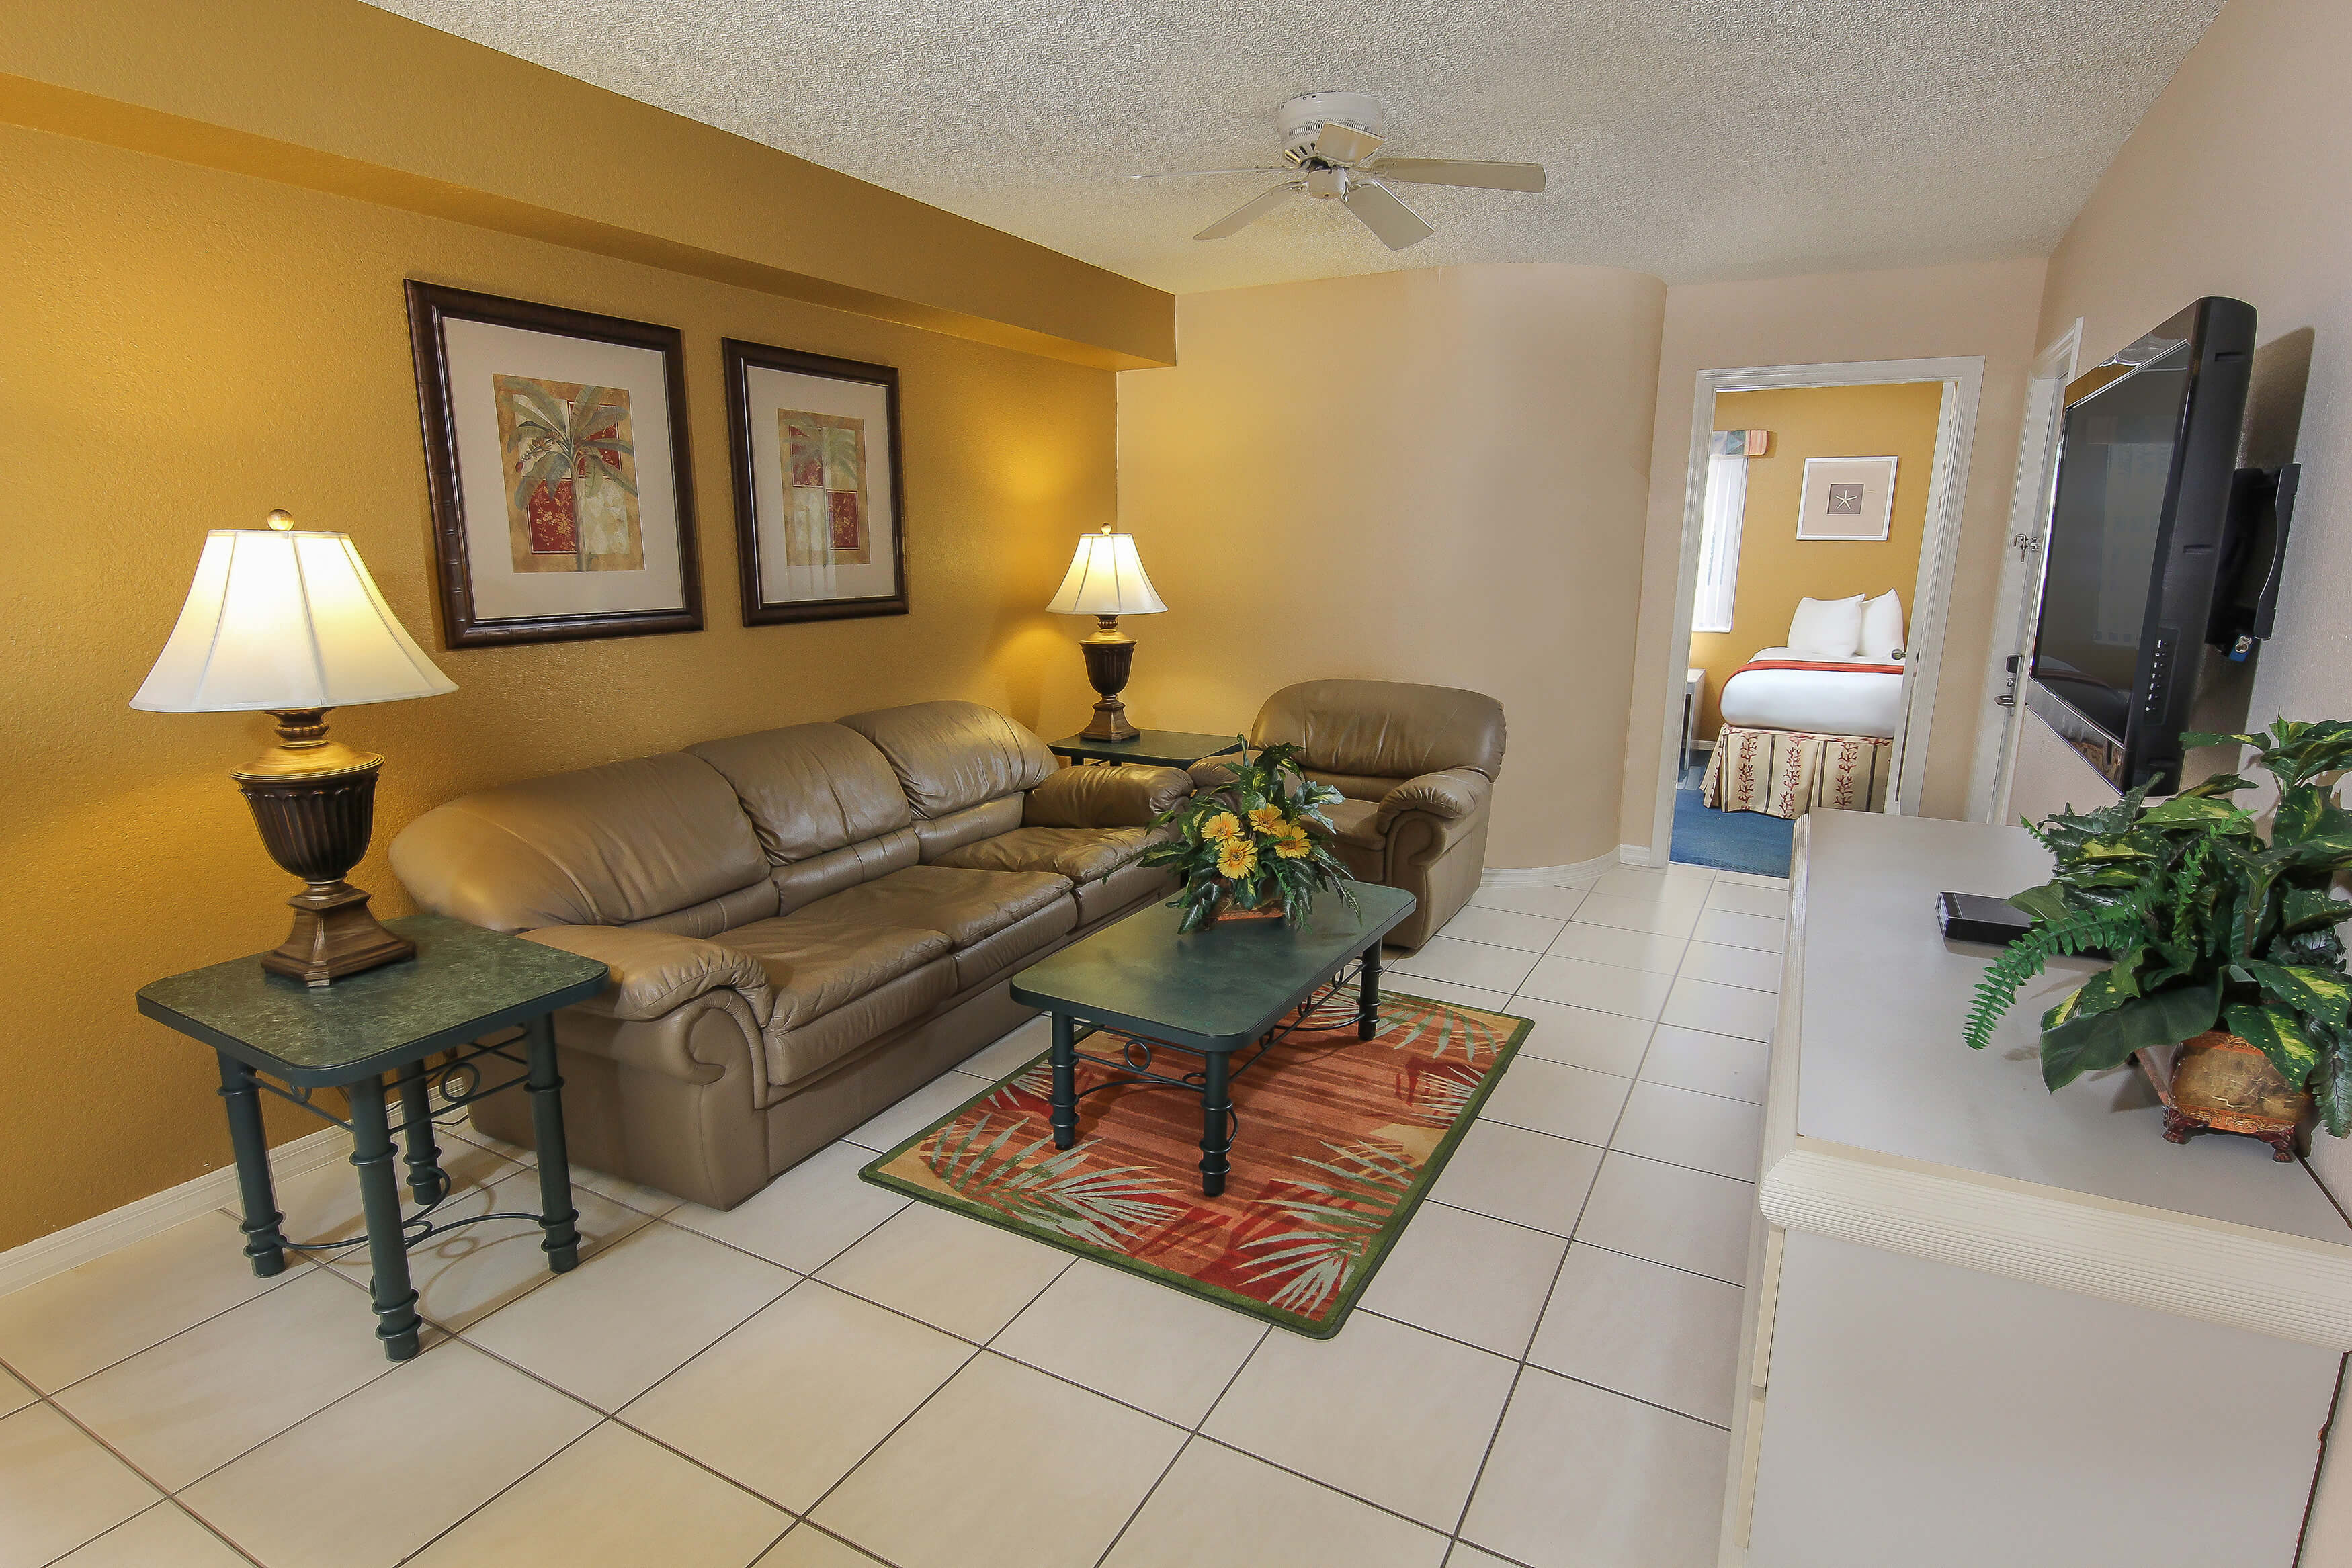 Living Area of 2 bedroom suite in Orlando, FL | Westgate Vacation Villas Resort & Spa | Orlando, FL | Westgate Resorts